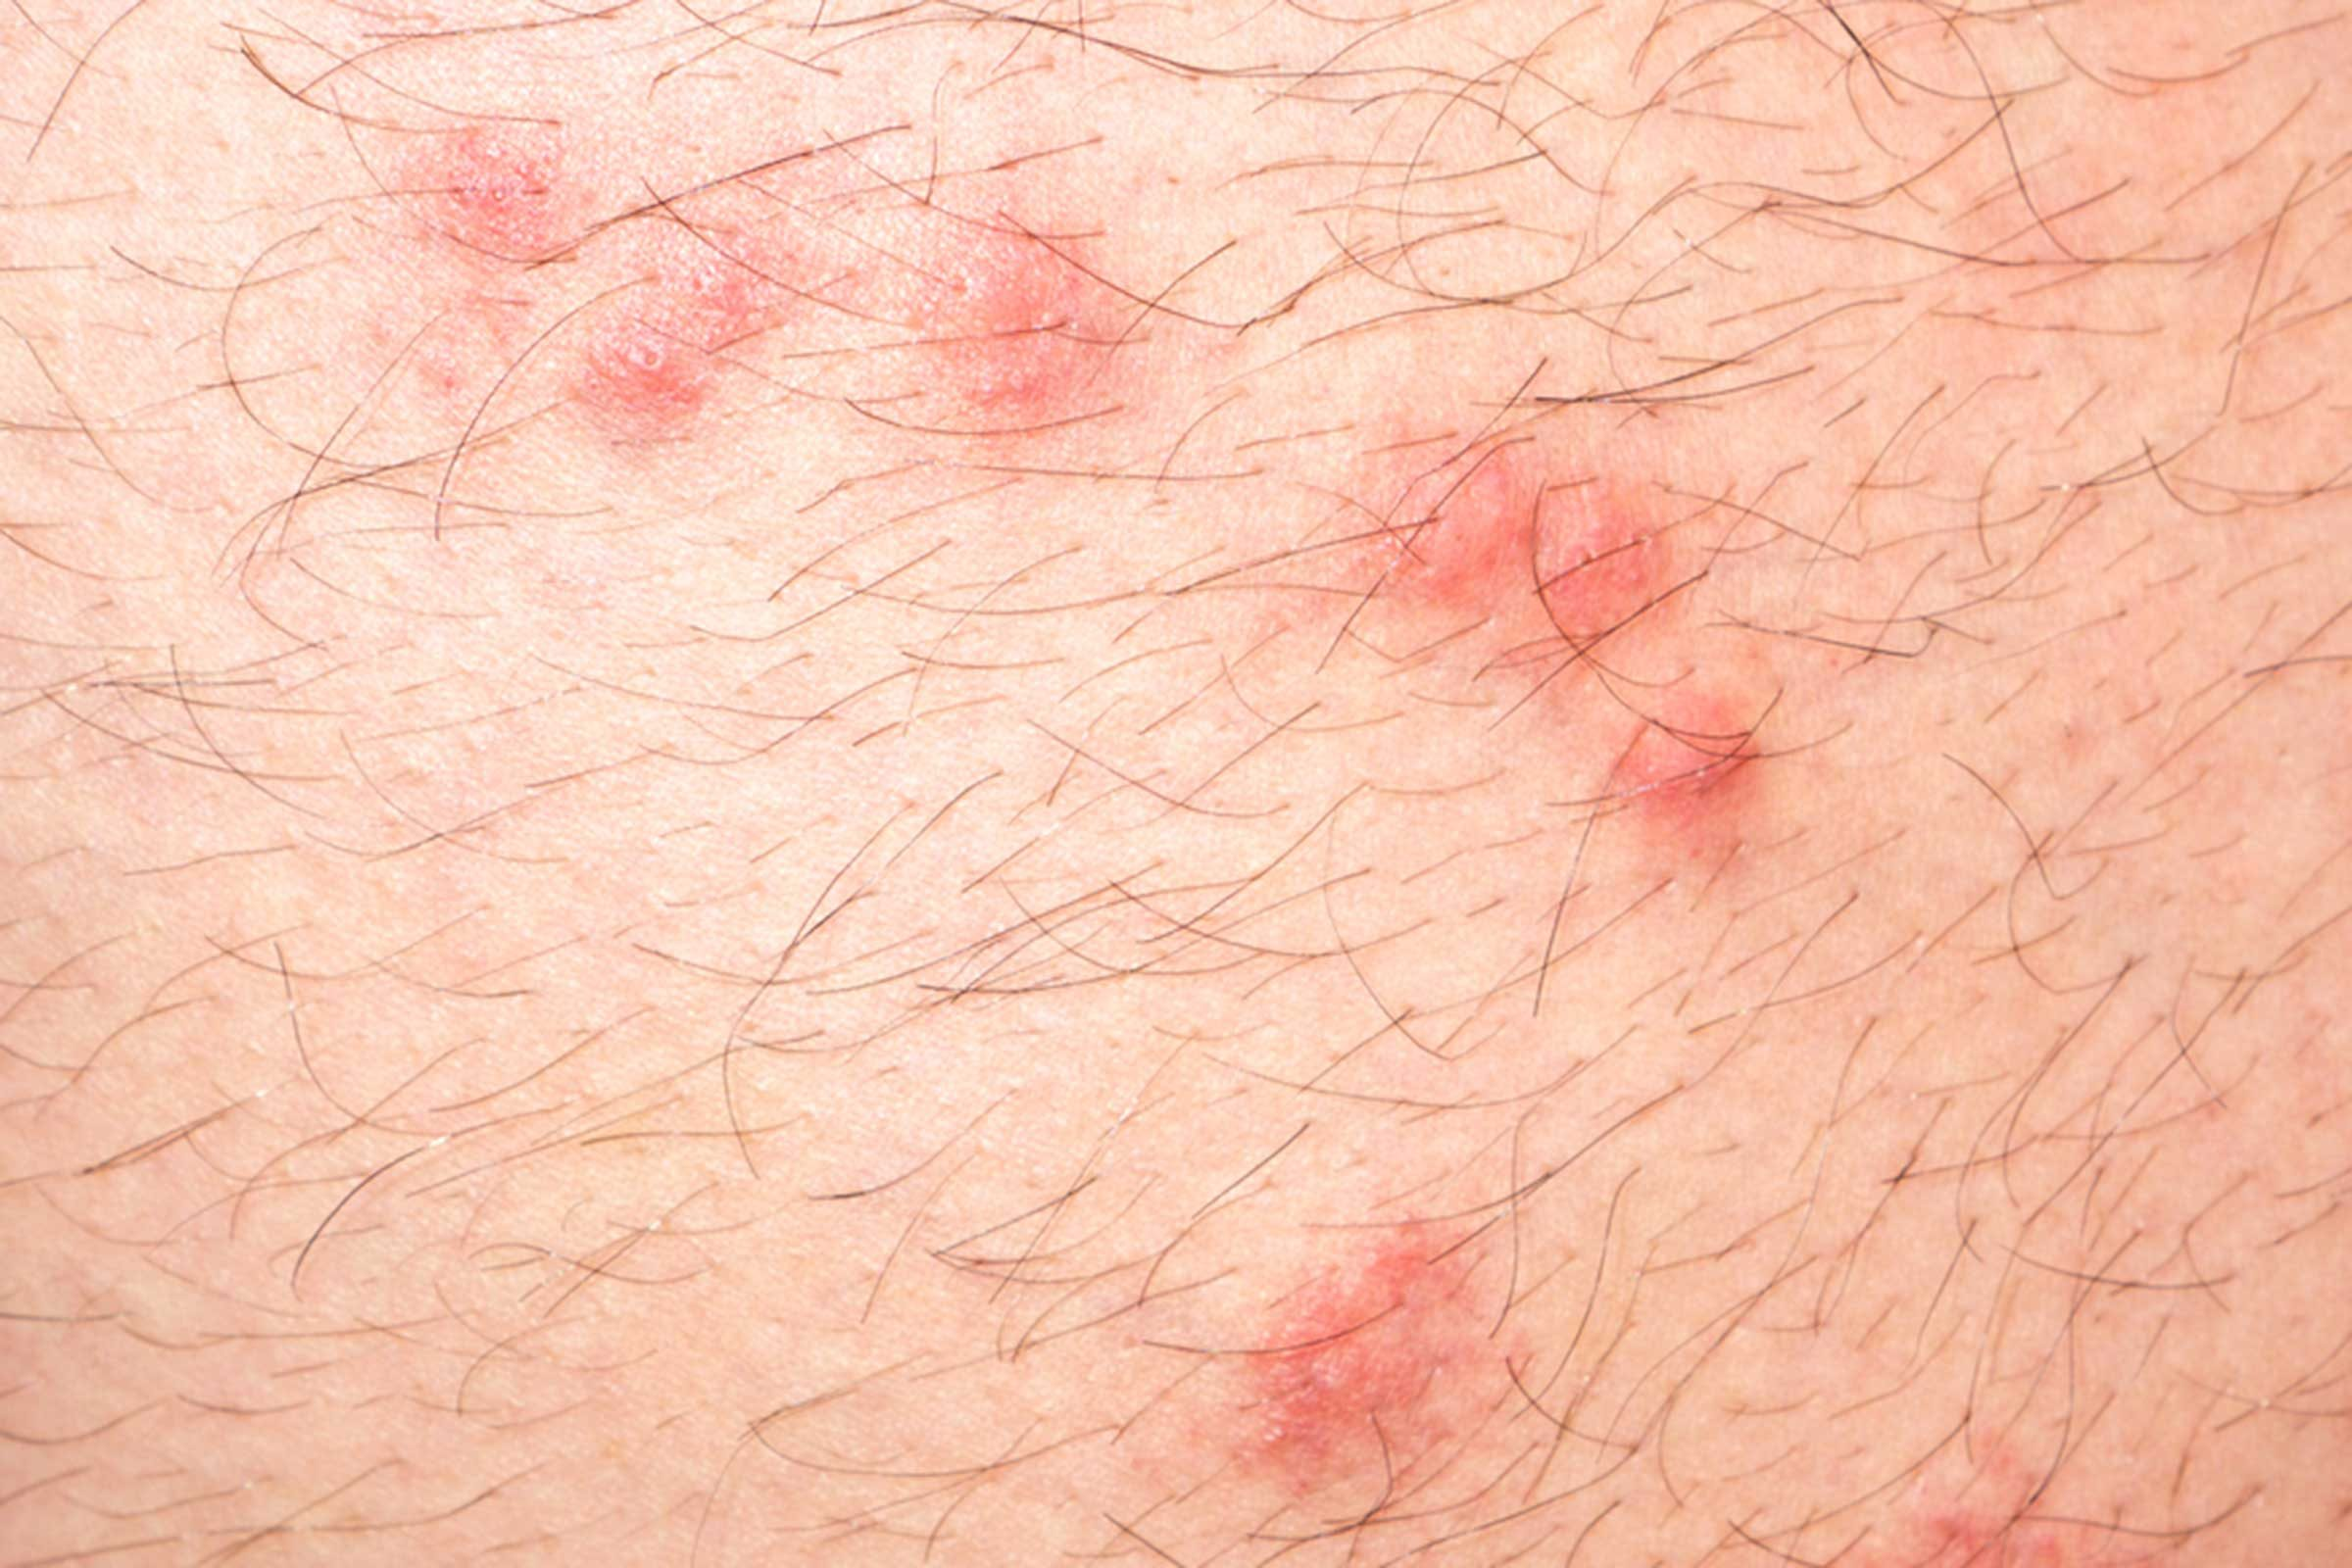 close up of flea bites on human skin